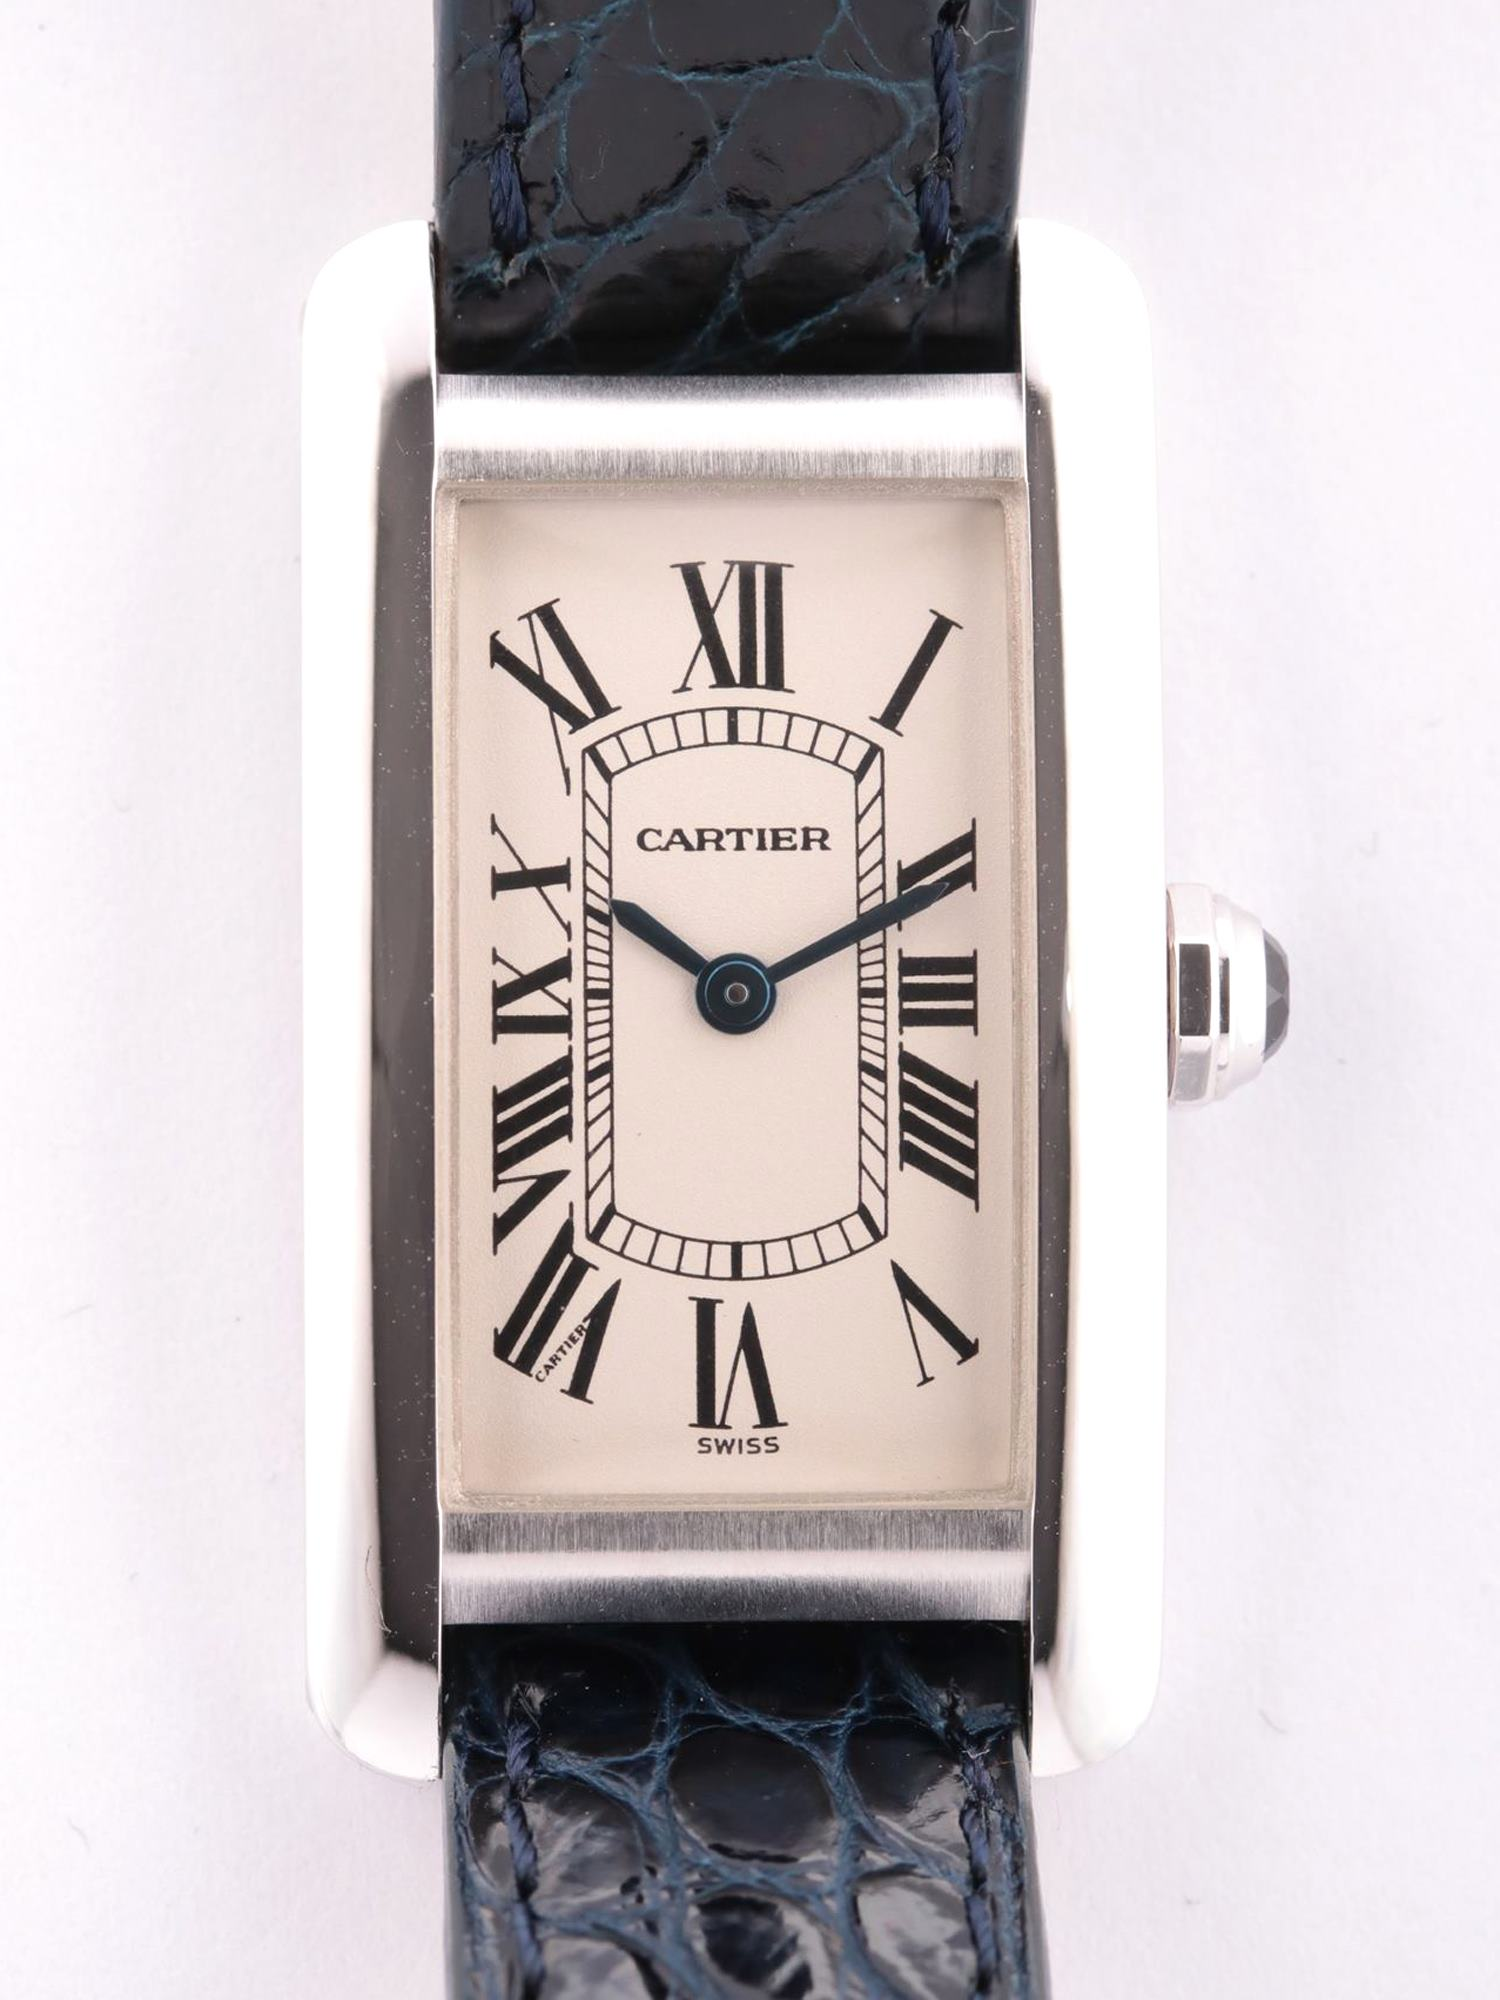 [Used article] Cartier Tank American SM K18 QZ white dial too Gomanashi